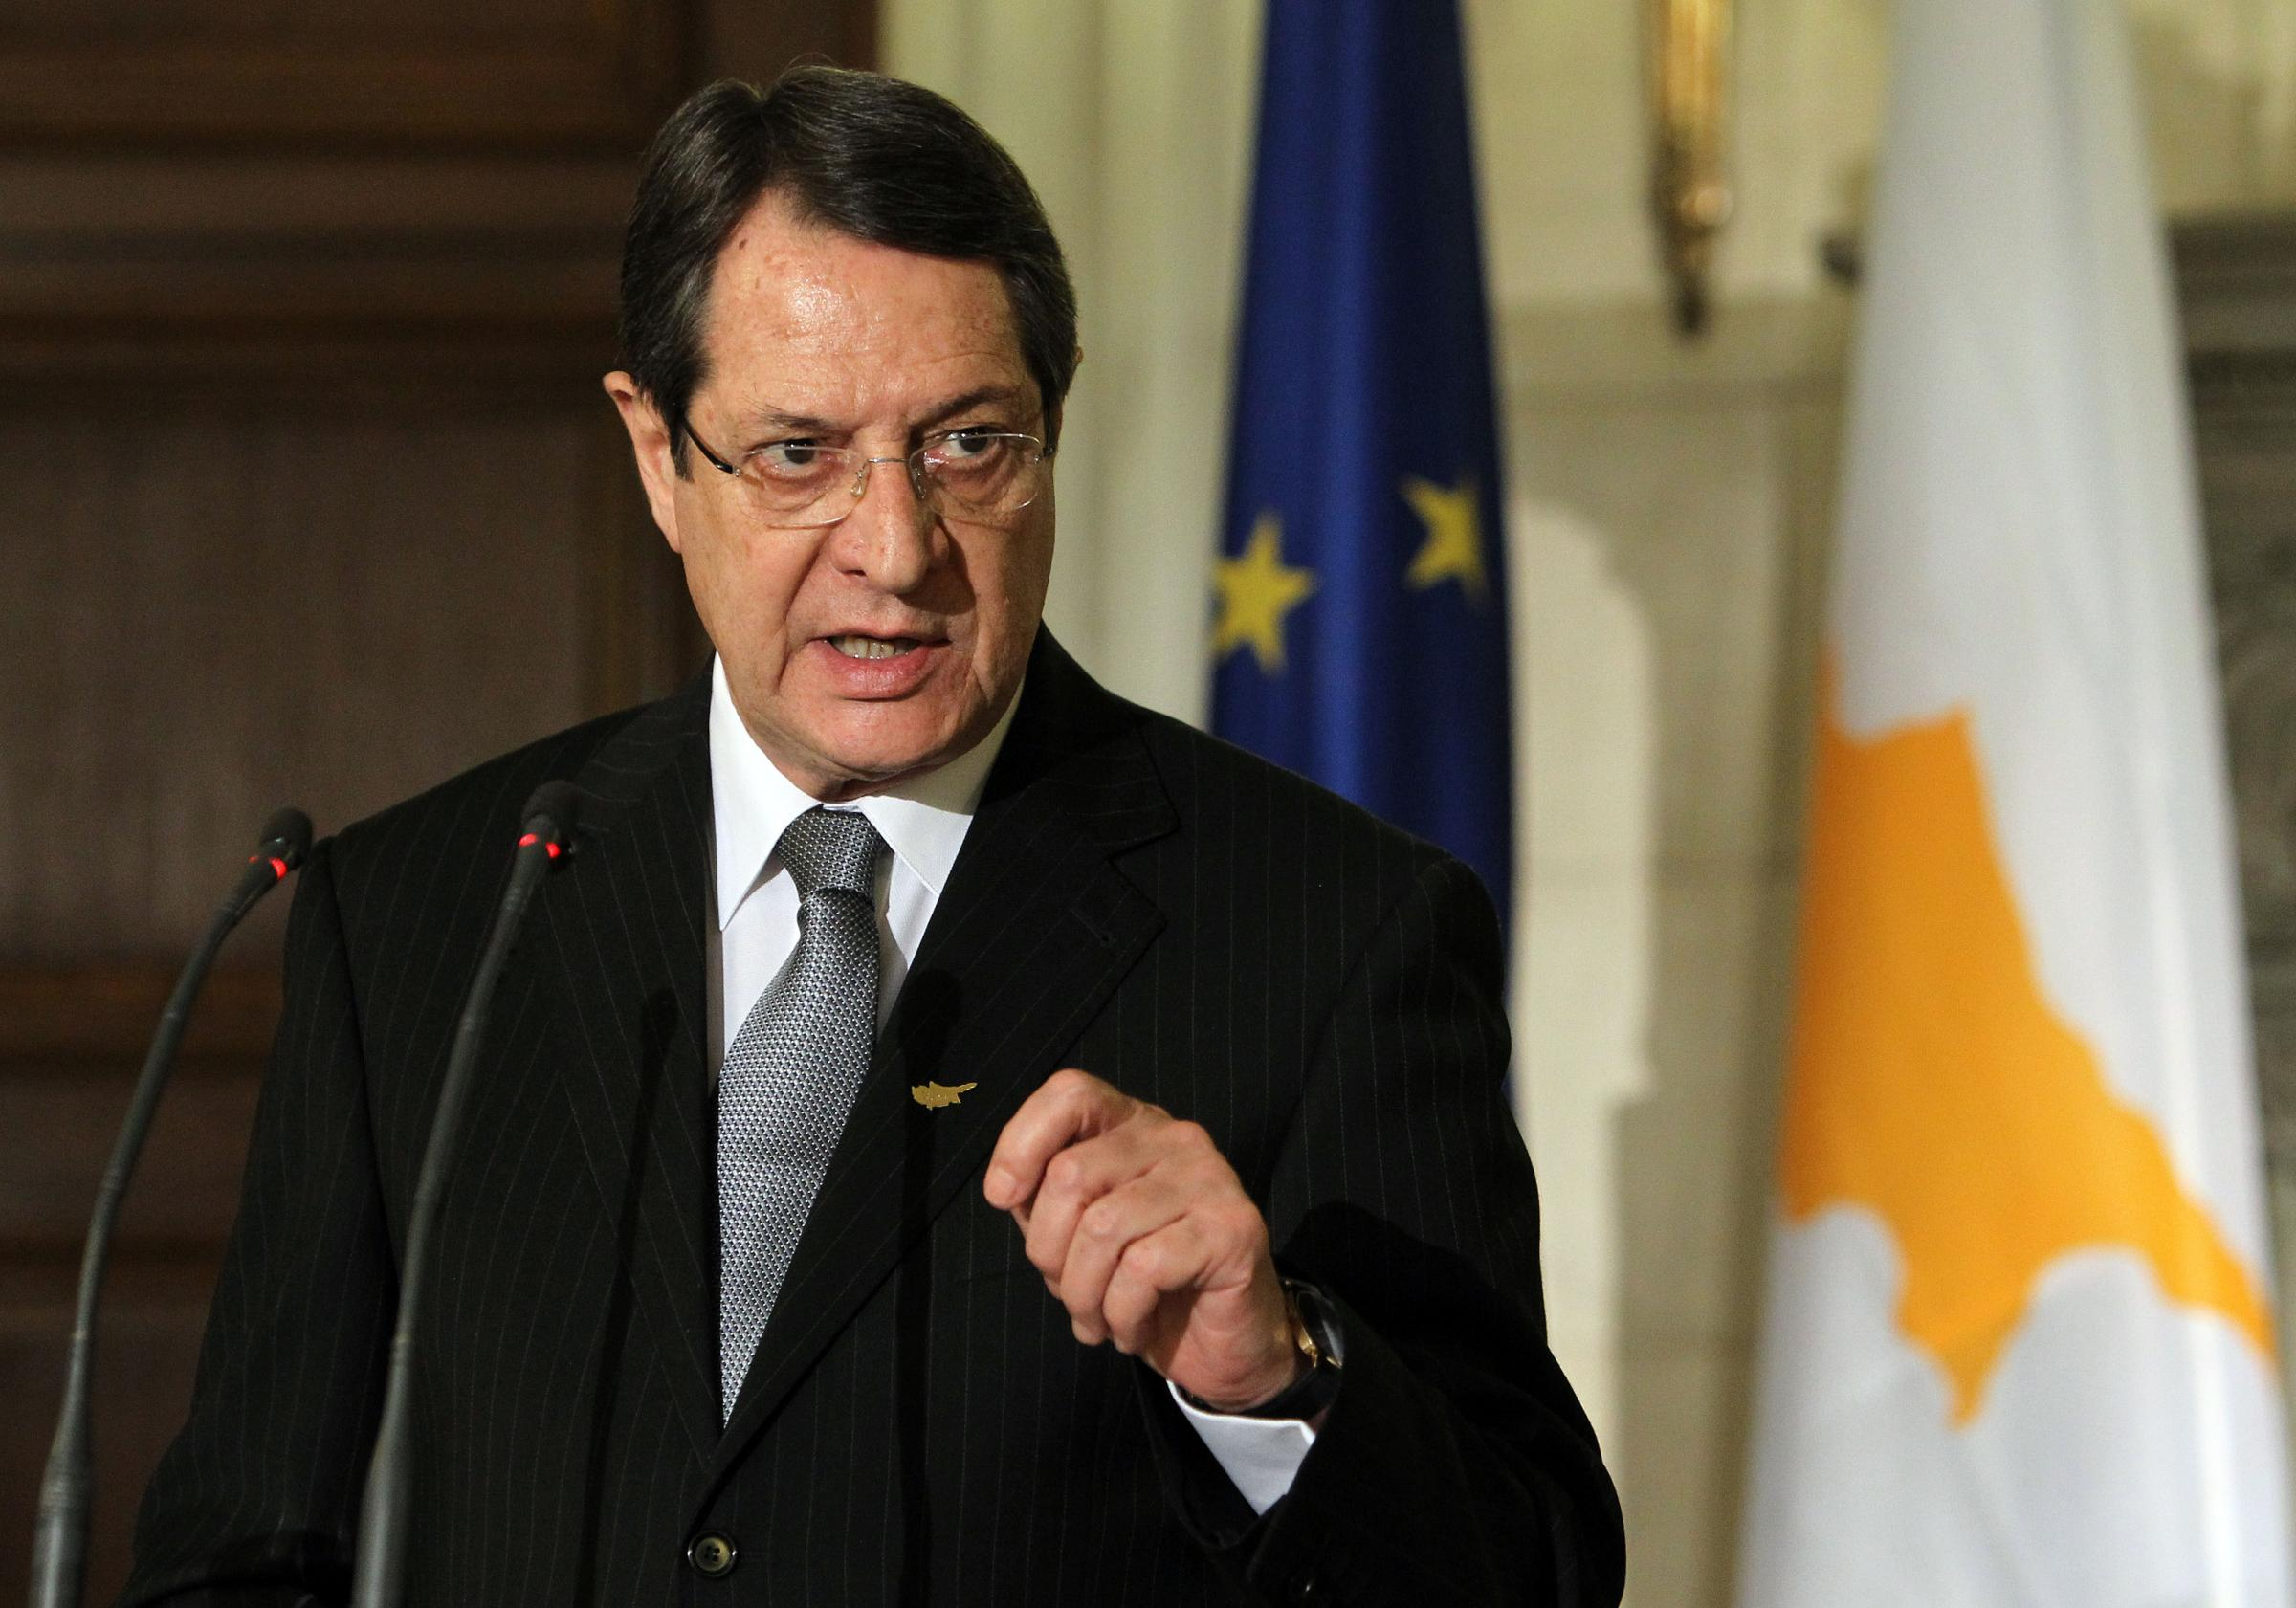 President Anastasiades: I remain committed to a solution that is consistent with the principles of International Law